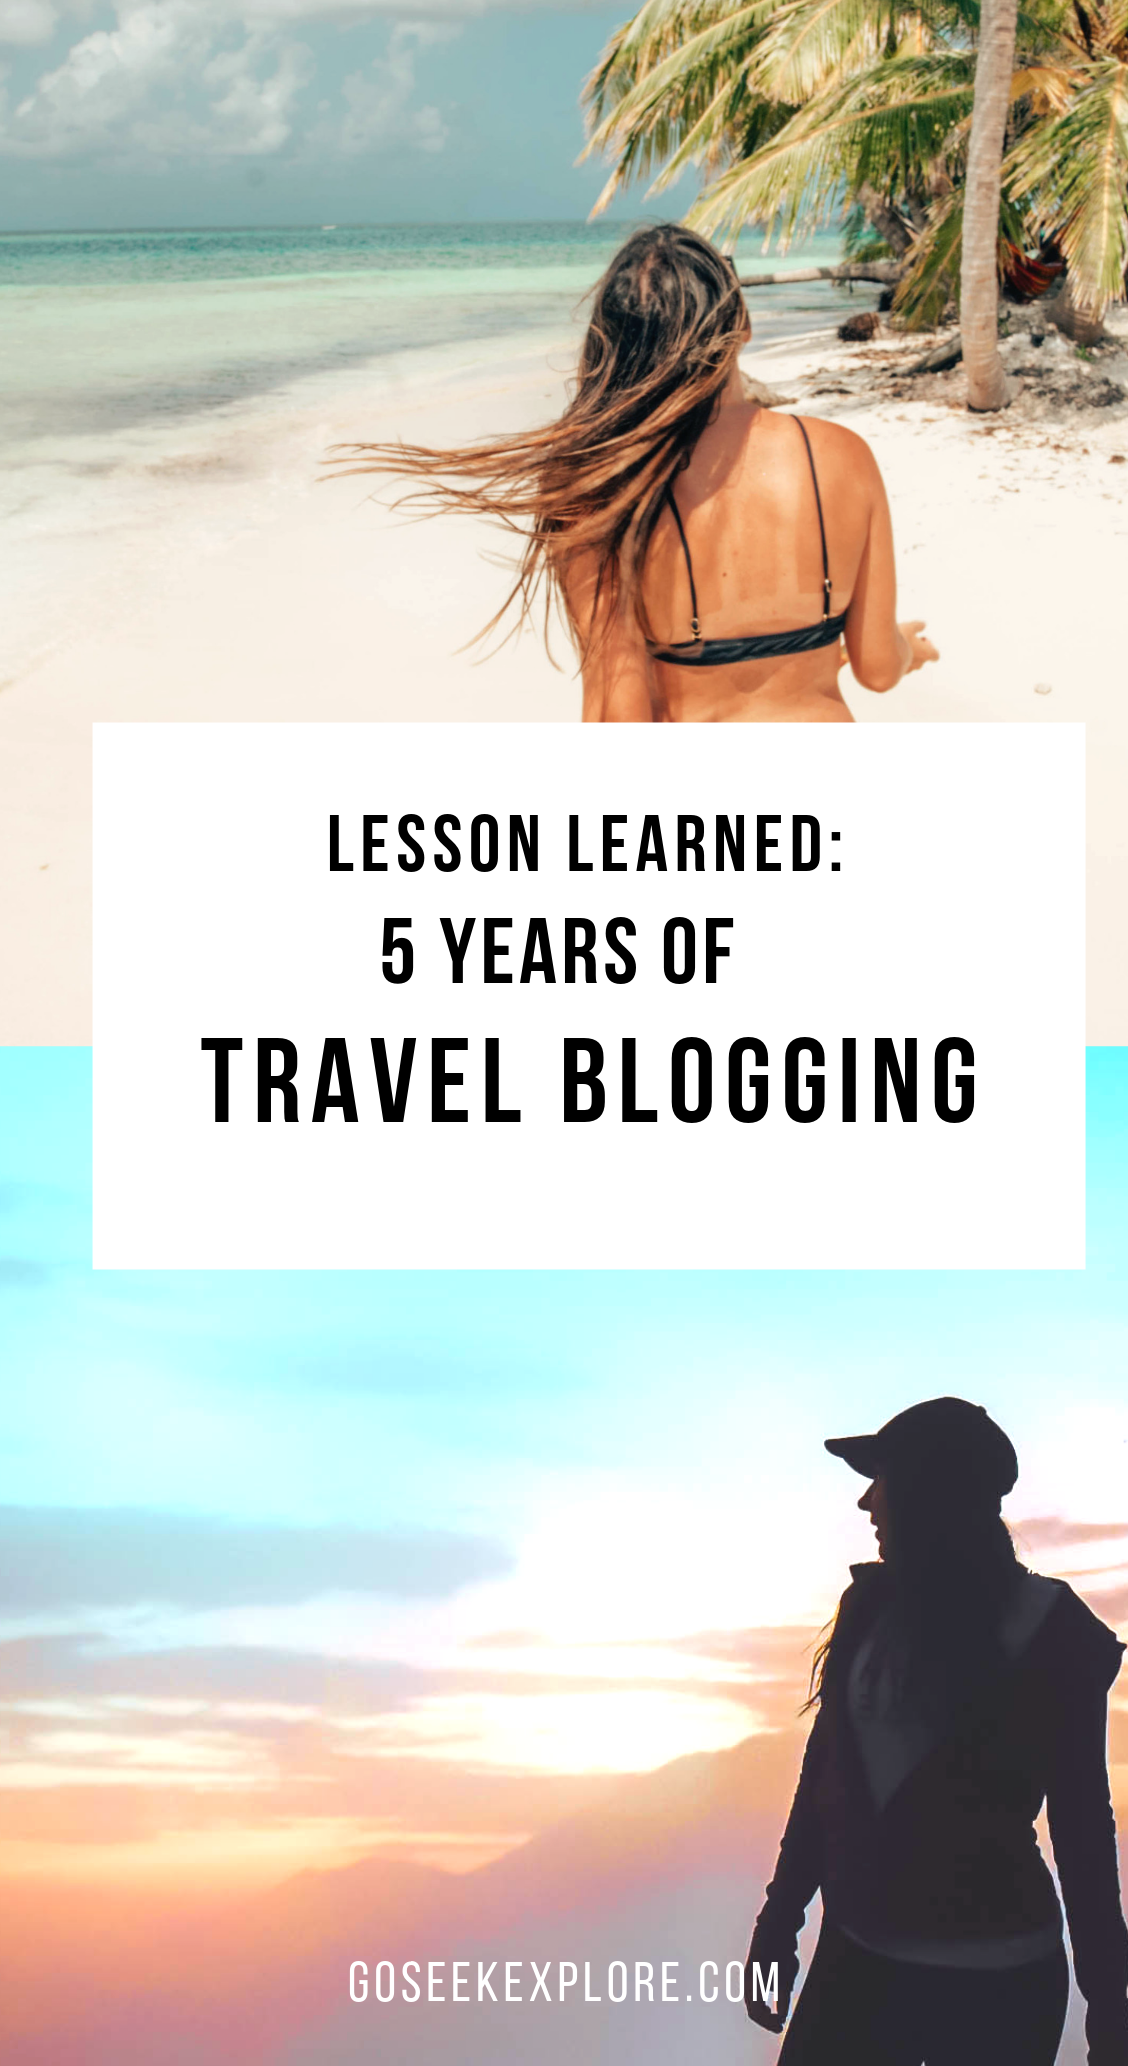 Lessons learned: 5 years of Travel Blogging at goseekexplore.com